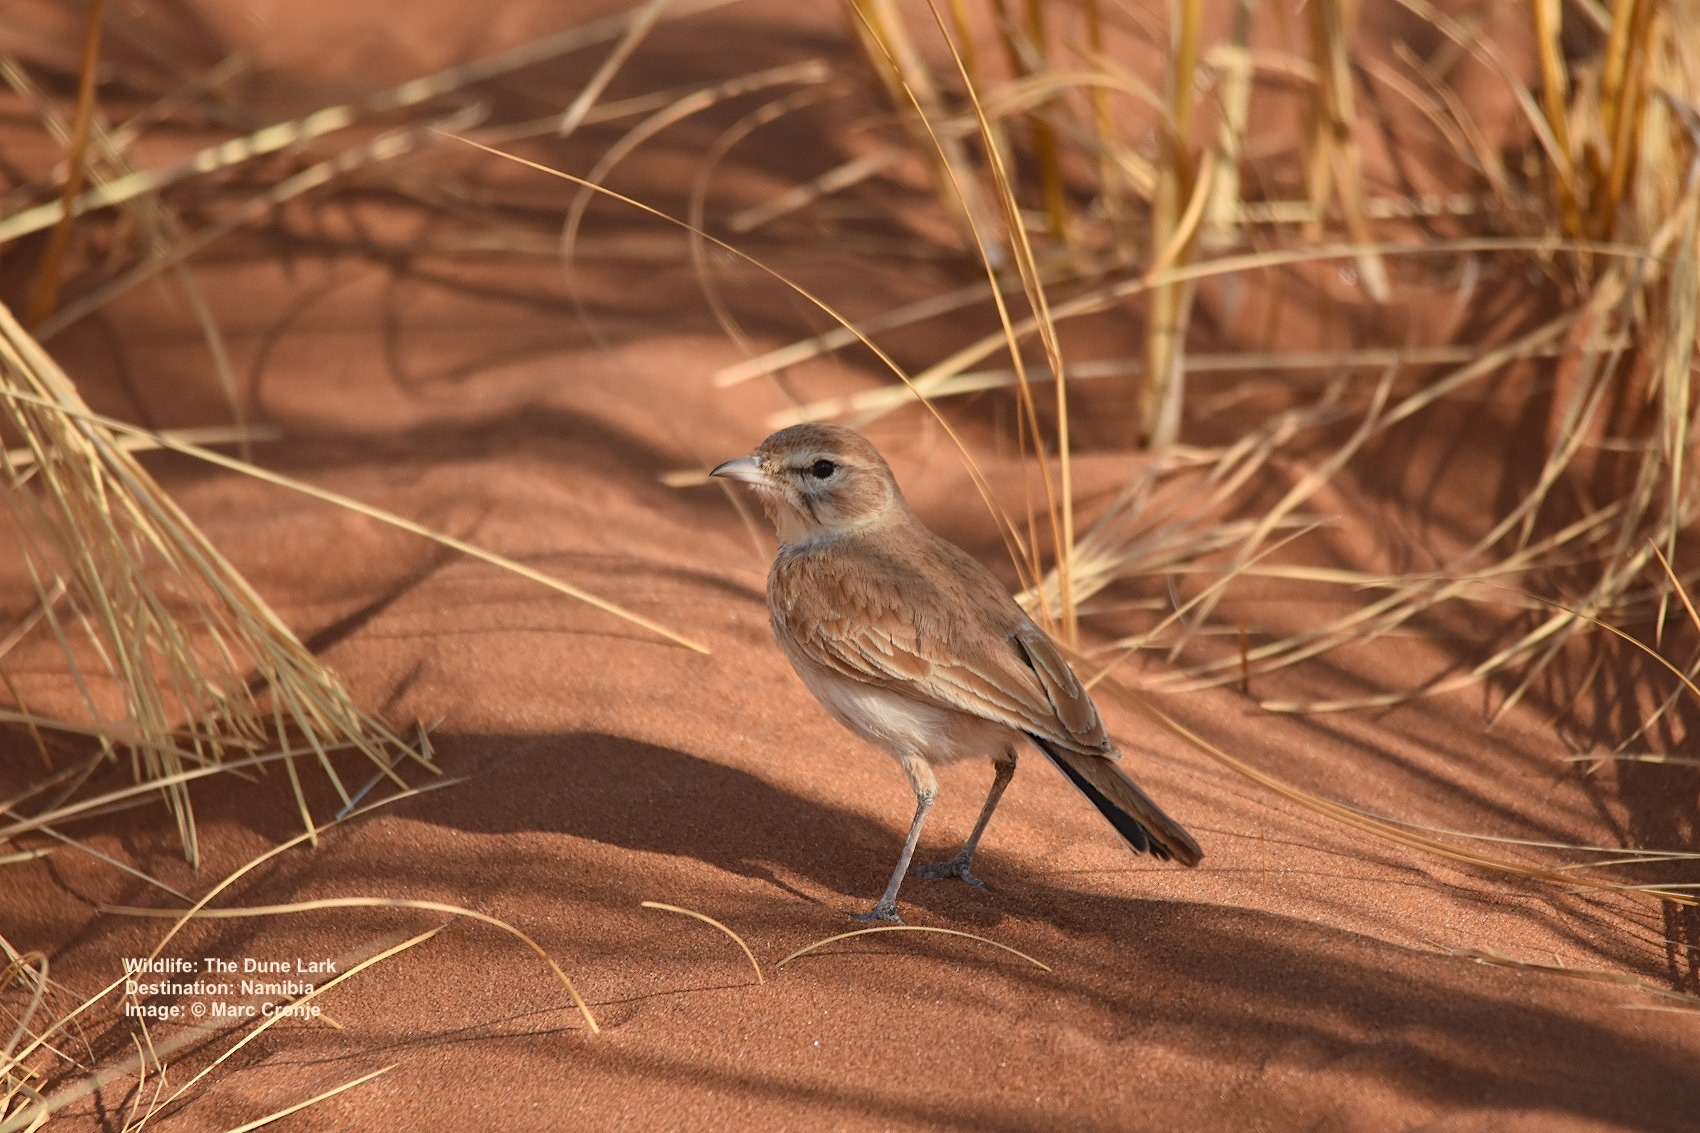 DUNE LARK. THIS UNASSUMING LITTLE BIRD IS ONE TOUGH CHARACTER WHOSE SURVIVAL IN THE NAMIB DESERT REQUIRED SOME UNUSUAL ADAPTATIONS. IMAGE:  ©MARC CRONJE